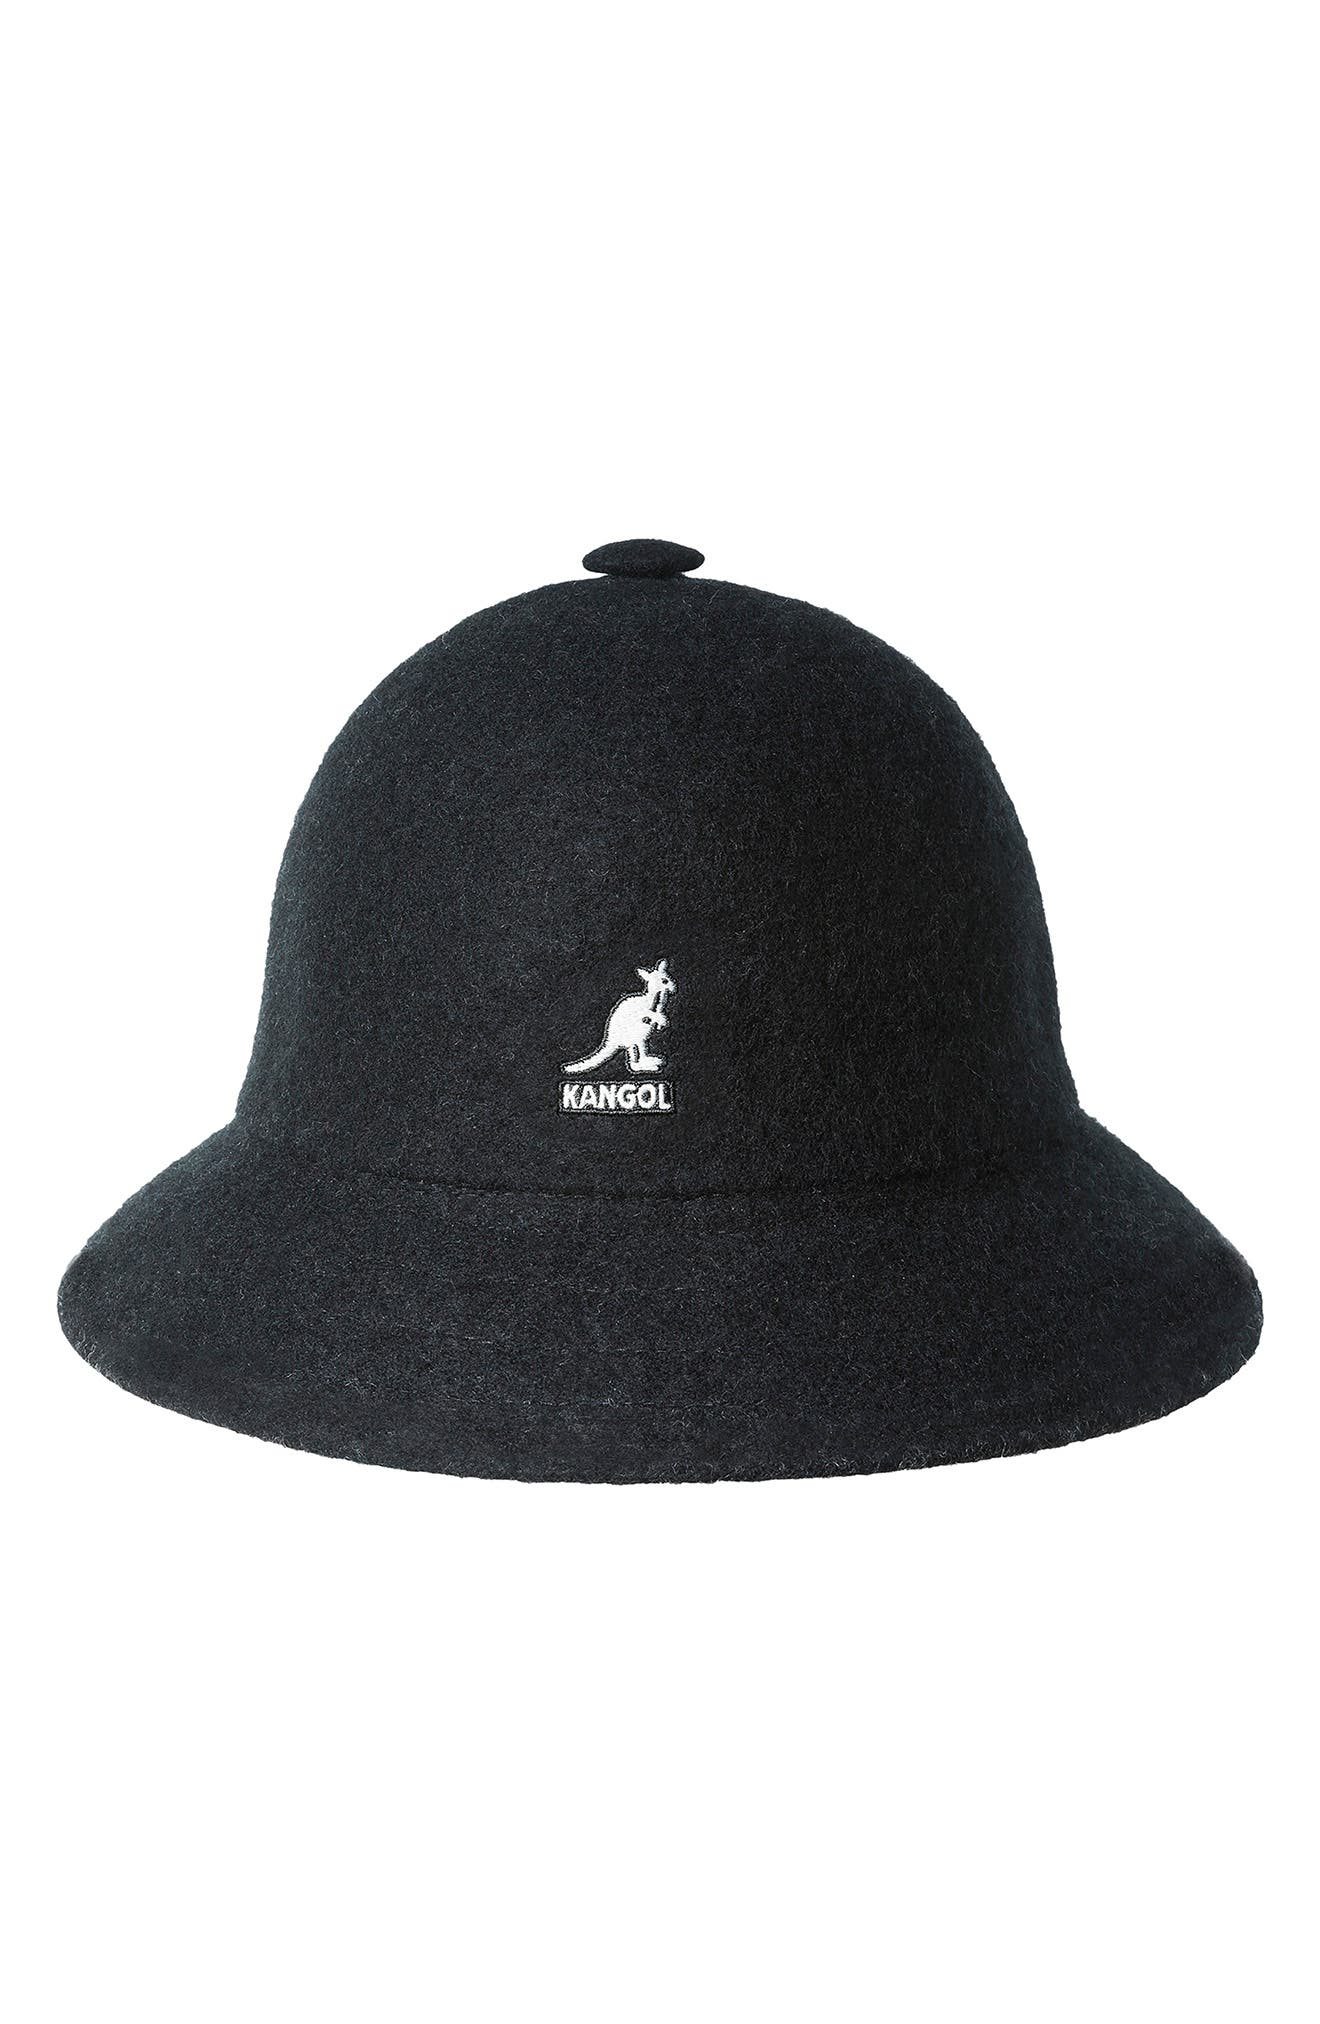 A wool blend perfect for chilly days adds cozy vibes to an iconic bucket cap with logo embroidery adding a signature touch to this \\\'80s hip-hop favorite. Style Name: Kangol Casual Wool Blend Bucket Hat. Style Number: 6099971. Available in stores.